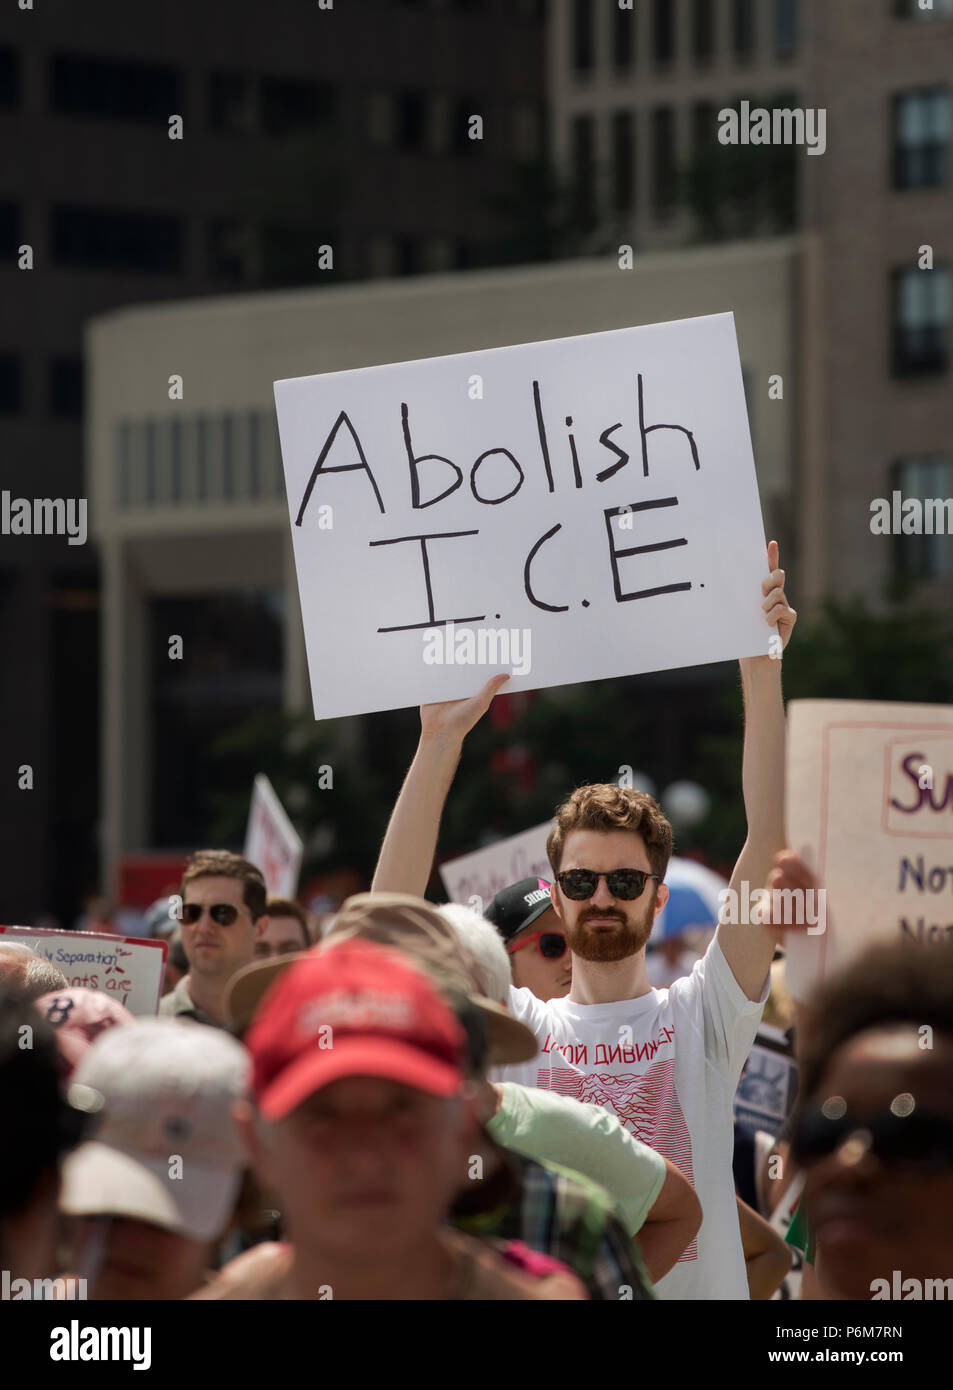 Boston, Massachusetts, USA. 30th June, 2018.  U.S. Student holding a sign 'Abolish I.C.E.' as thousands gathered in City Hall Plaza in Boston, MA, to protest the current United States administration policy of immigrant family Separation. Rallies against U.S. President Donald Trump's policy of the detention of immigrants and immigrant families separated by U.S. customs and border agents (I.C.E.) took place in more than 750 US cities on June 30th. Chuck Nacke / Alamy Live News - Stock Image